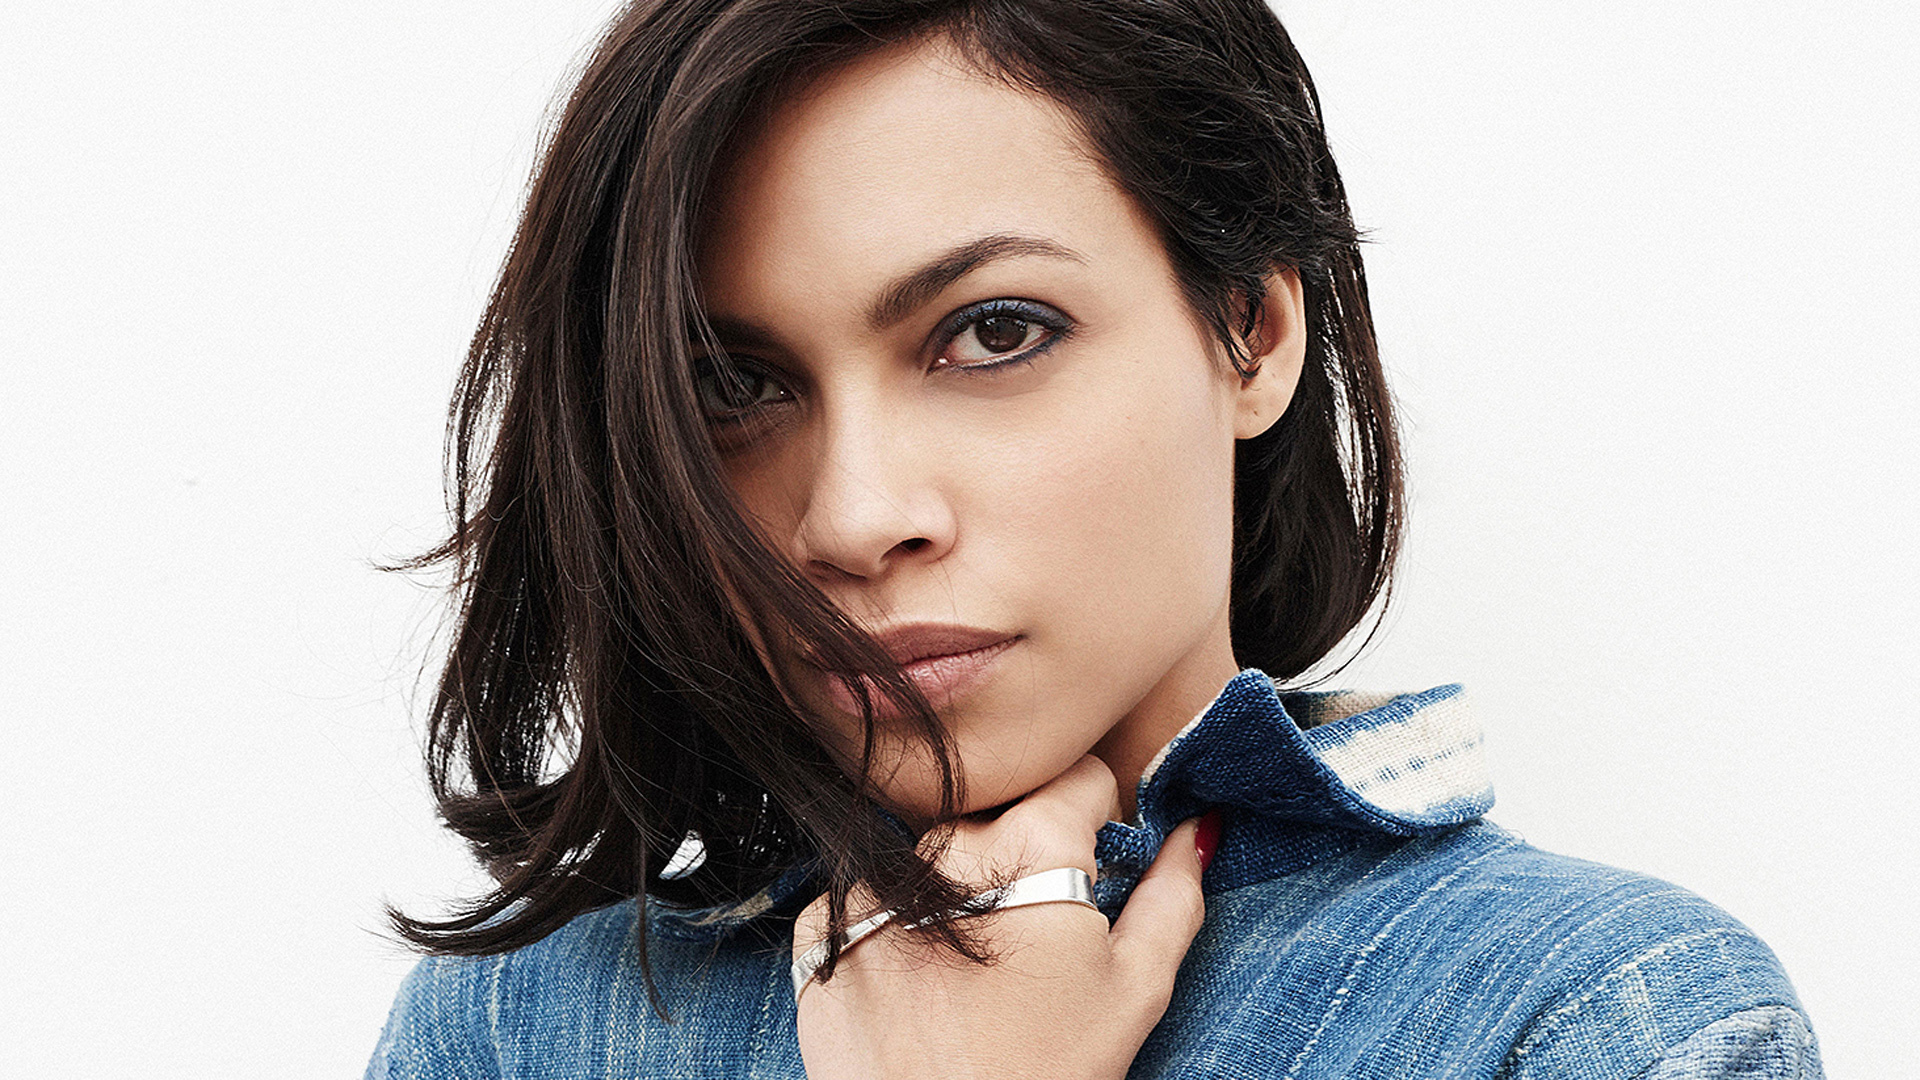 Rosario Dawson For Desktop Background